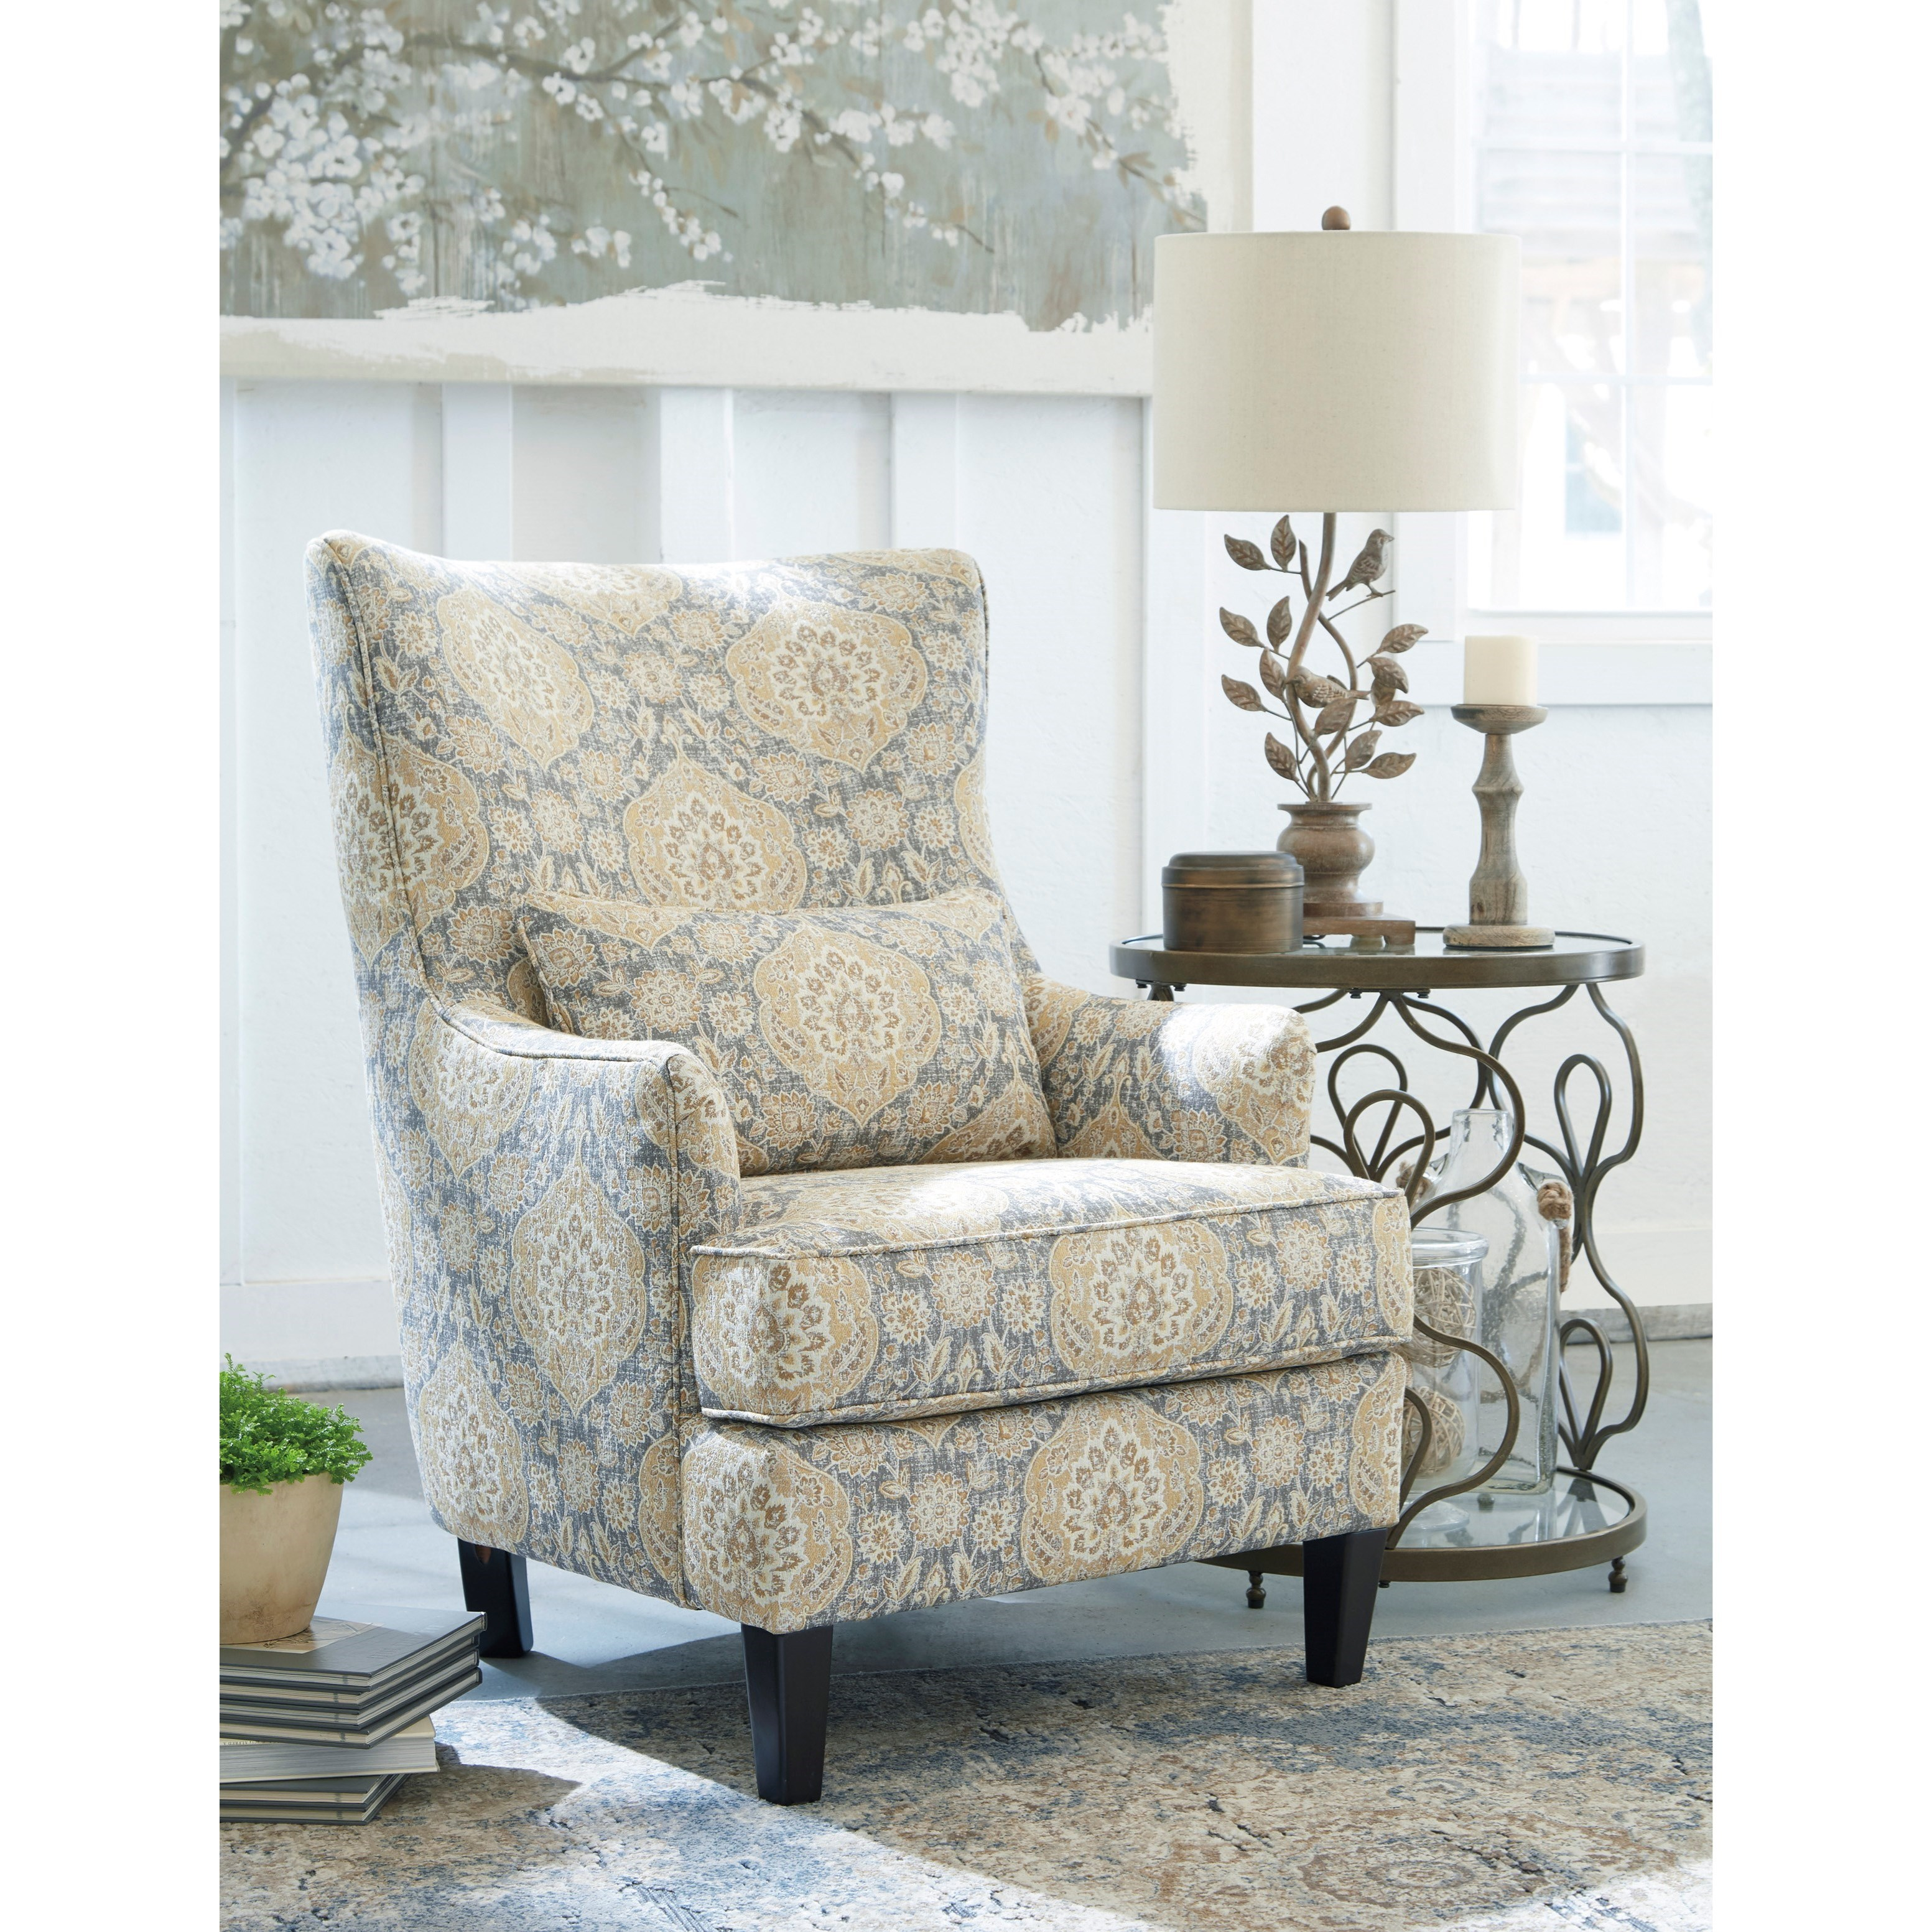 Ashley Furniture Bryant Ar Collection Collection Ashley: Ashley Furniture Aramore Scalloped Wingback Accent Chair